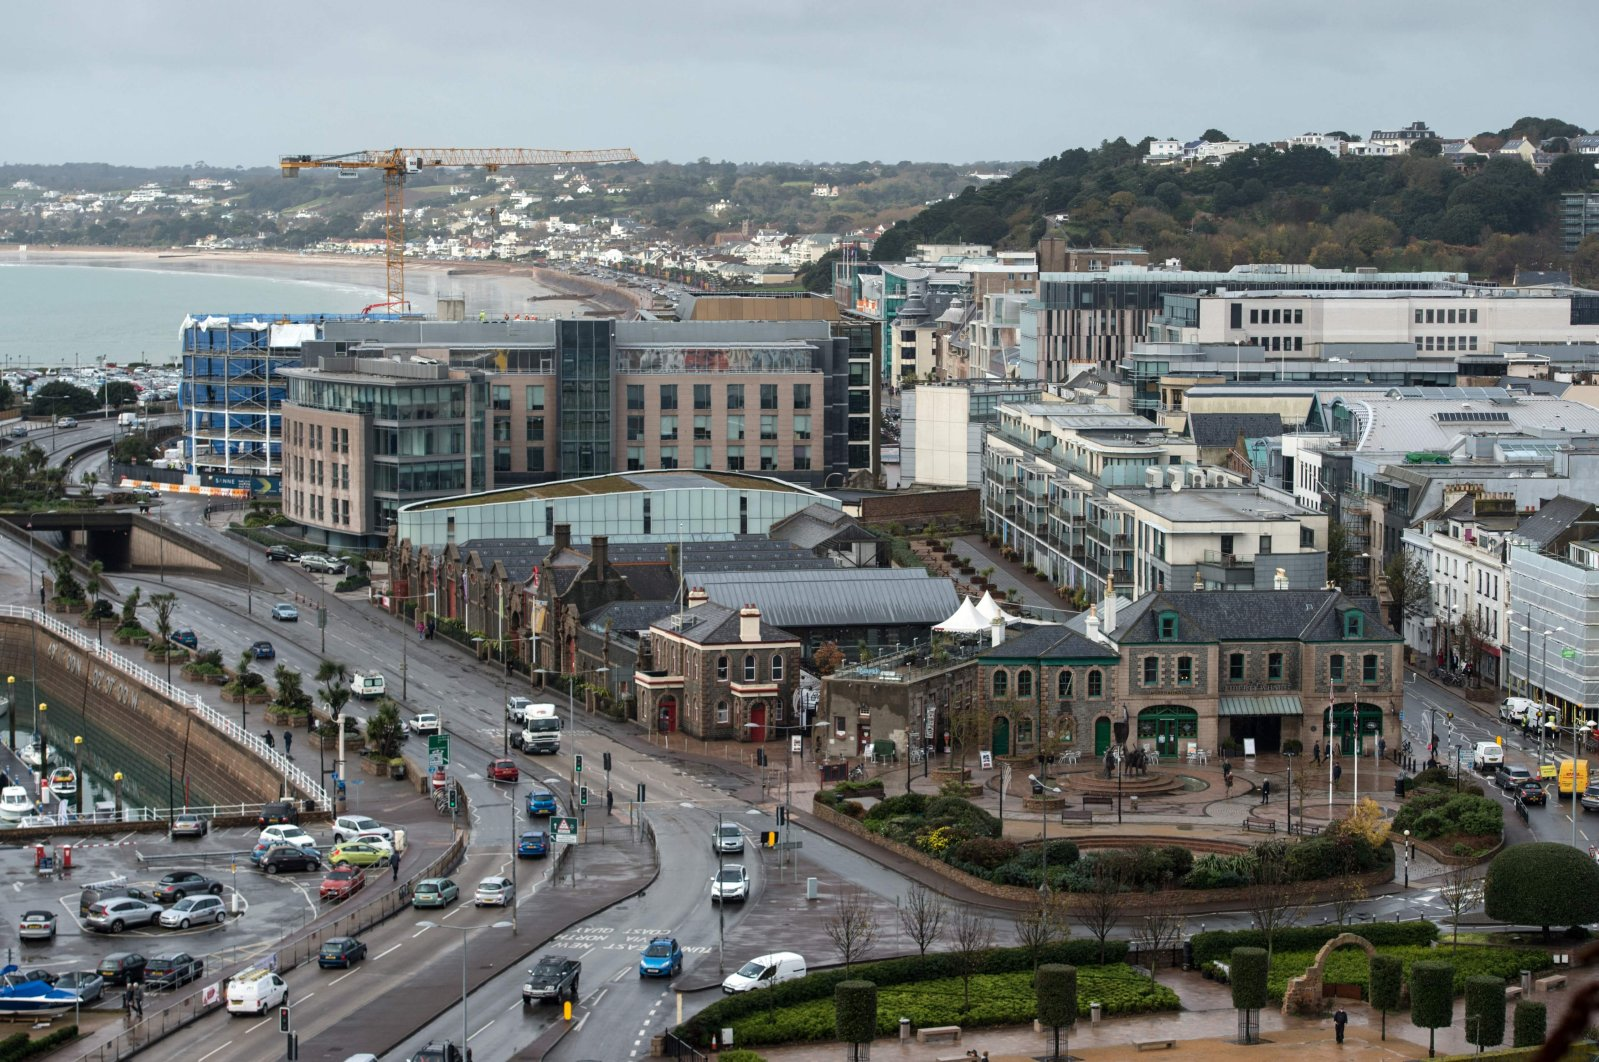 Office and residential buildings are pictured in front of the beach and seafront in St. Helier, on the British island of Jersey, Nov. 9, 2017, Jersey, U.K. (AFP Photo)